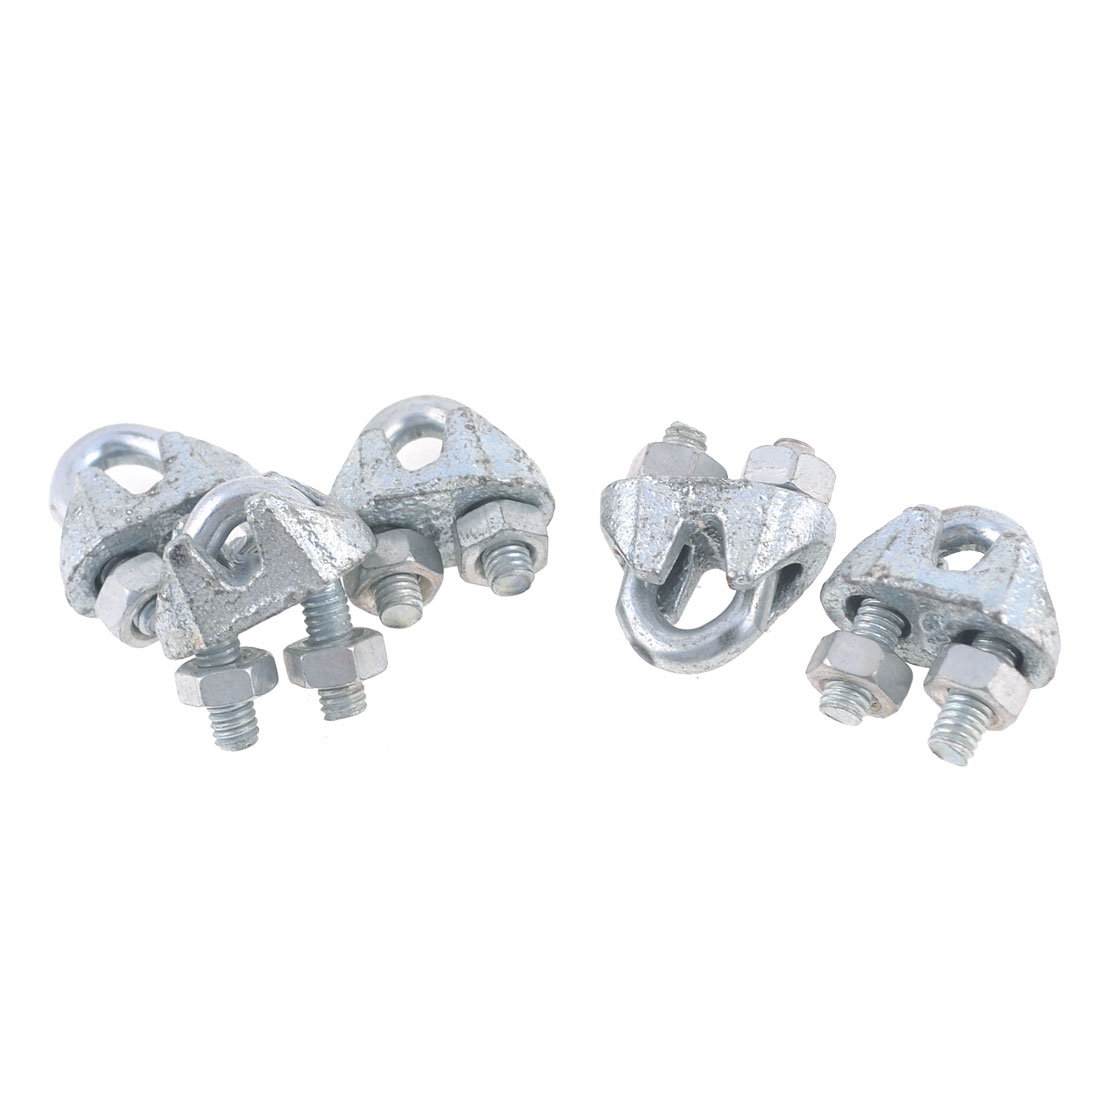 "5 Pcs Screwed Fastener U Bolt Clamp Clips for 4mm 5/32"" Wire Rope"